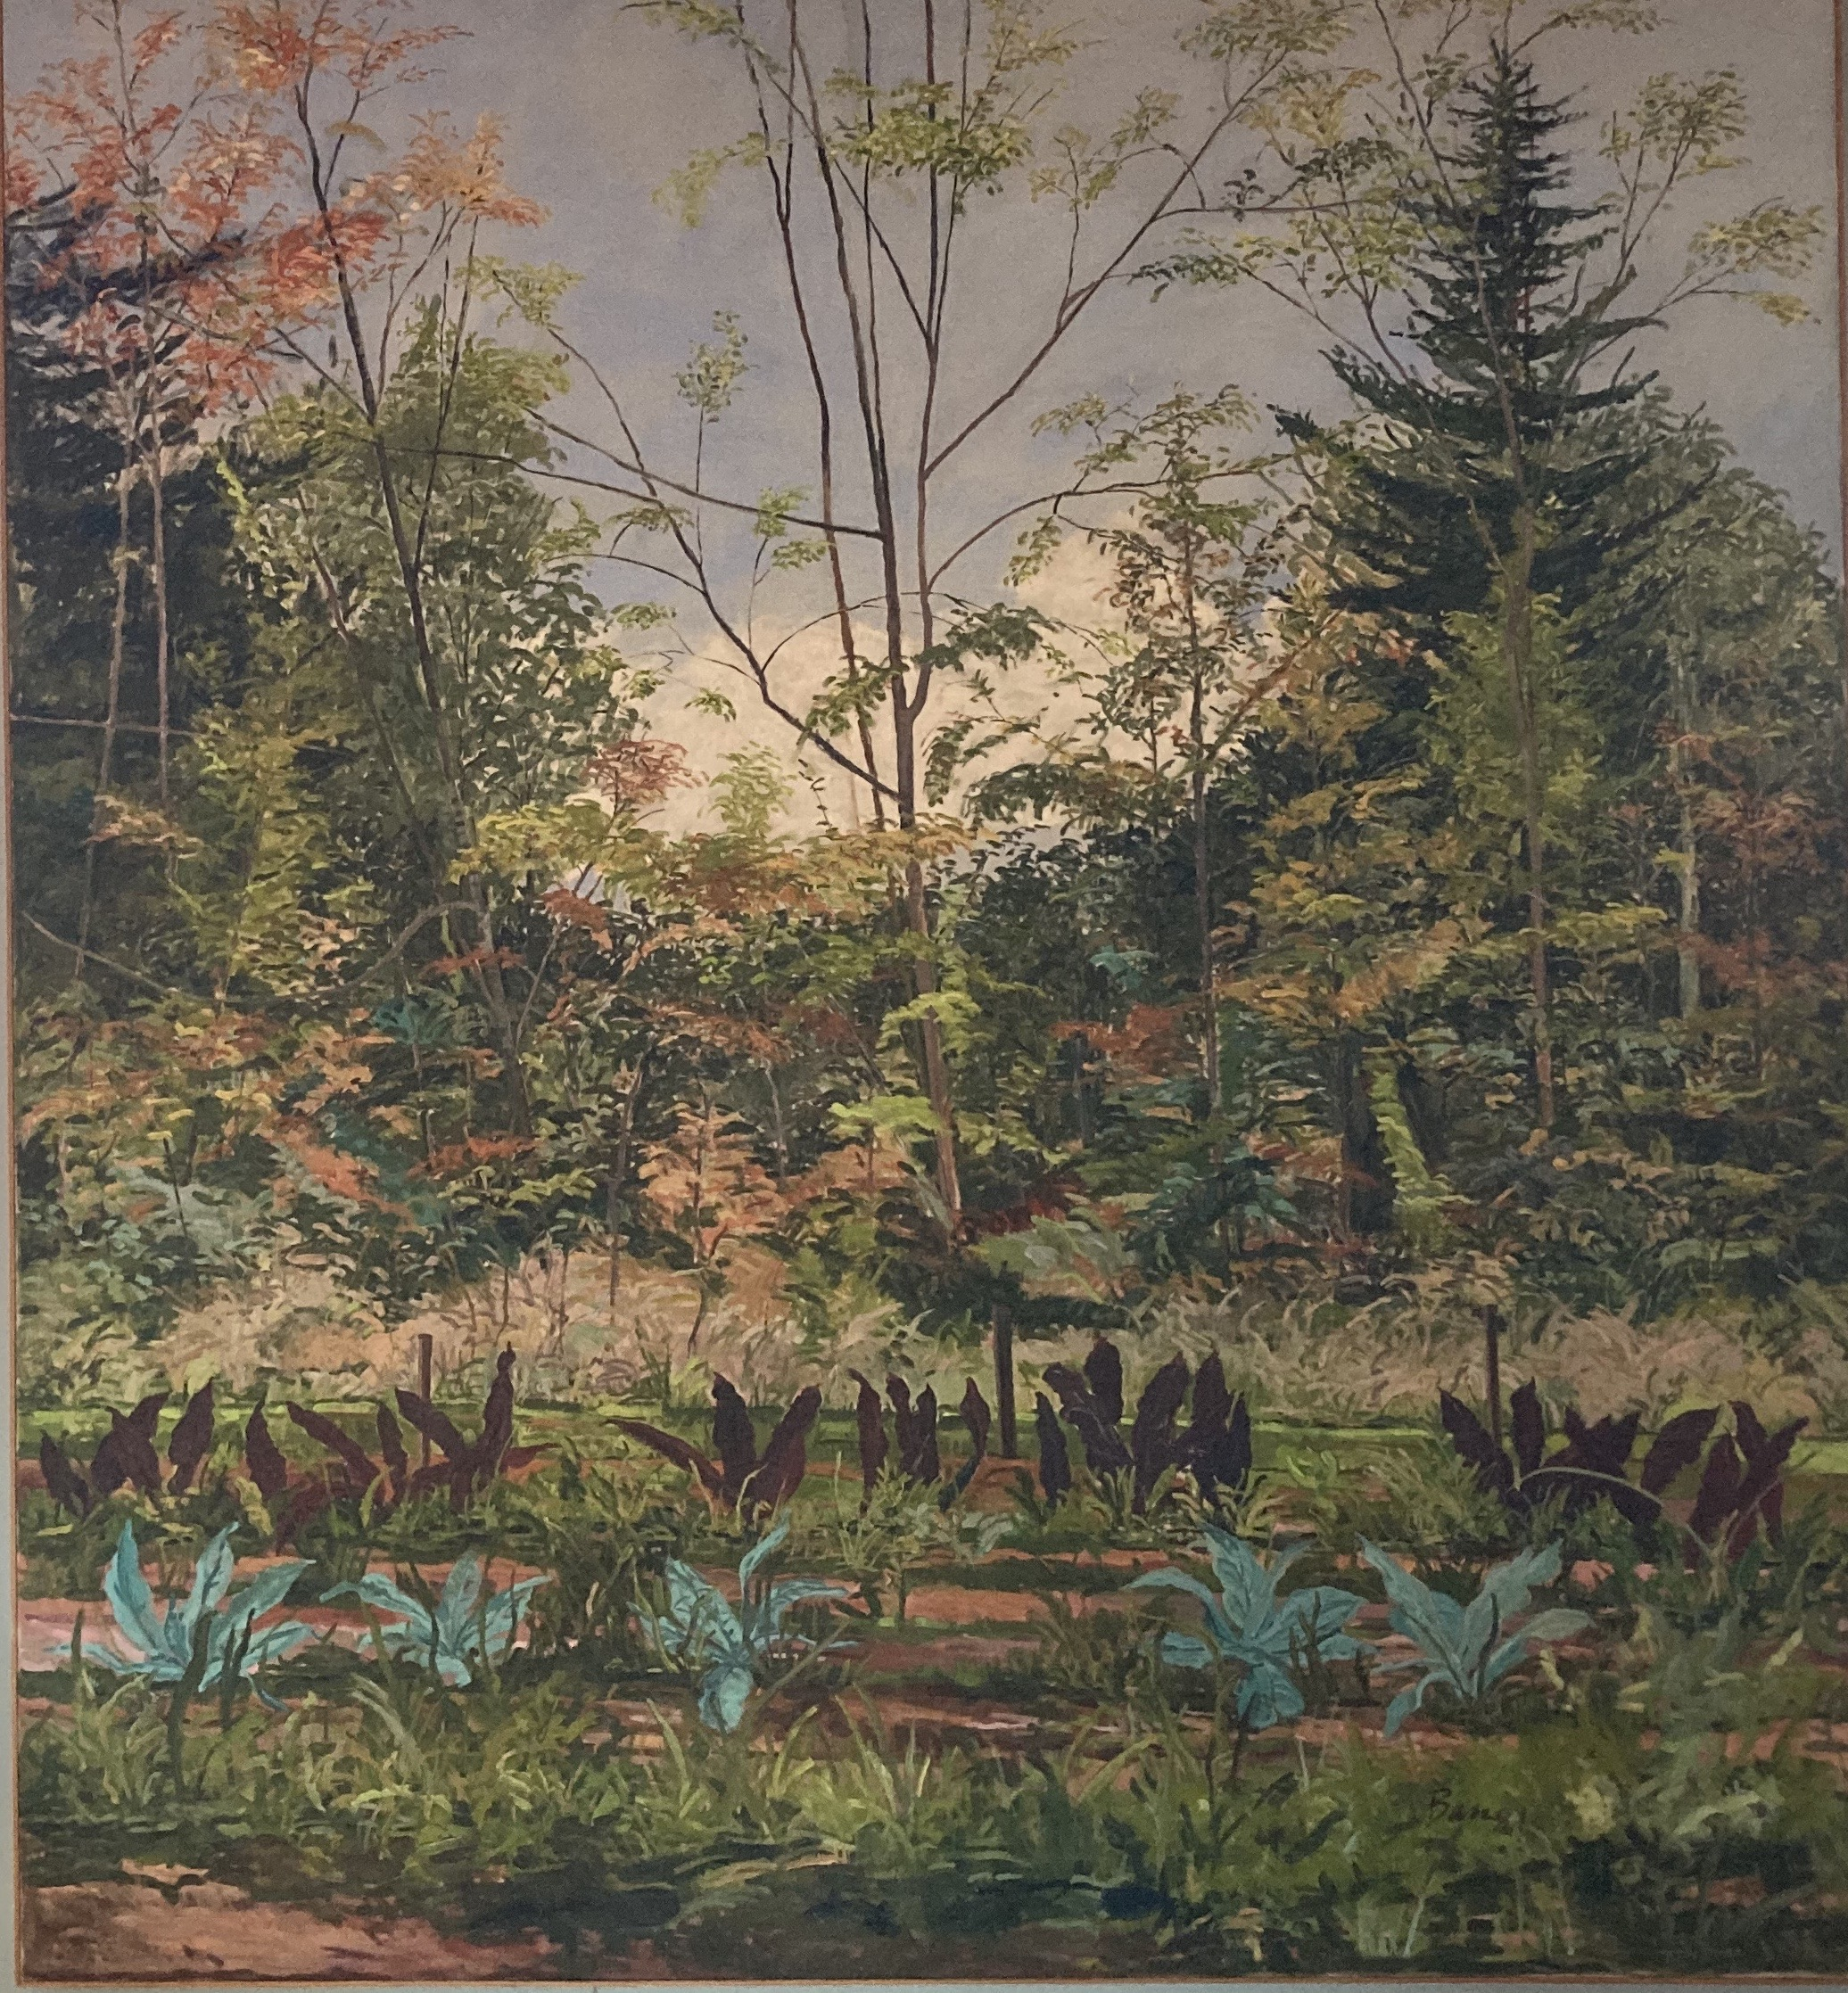 Landscape at Yaddo 18, 1981-1982